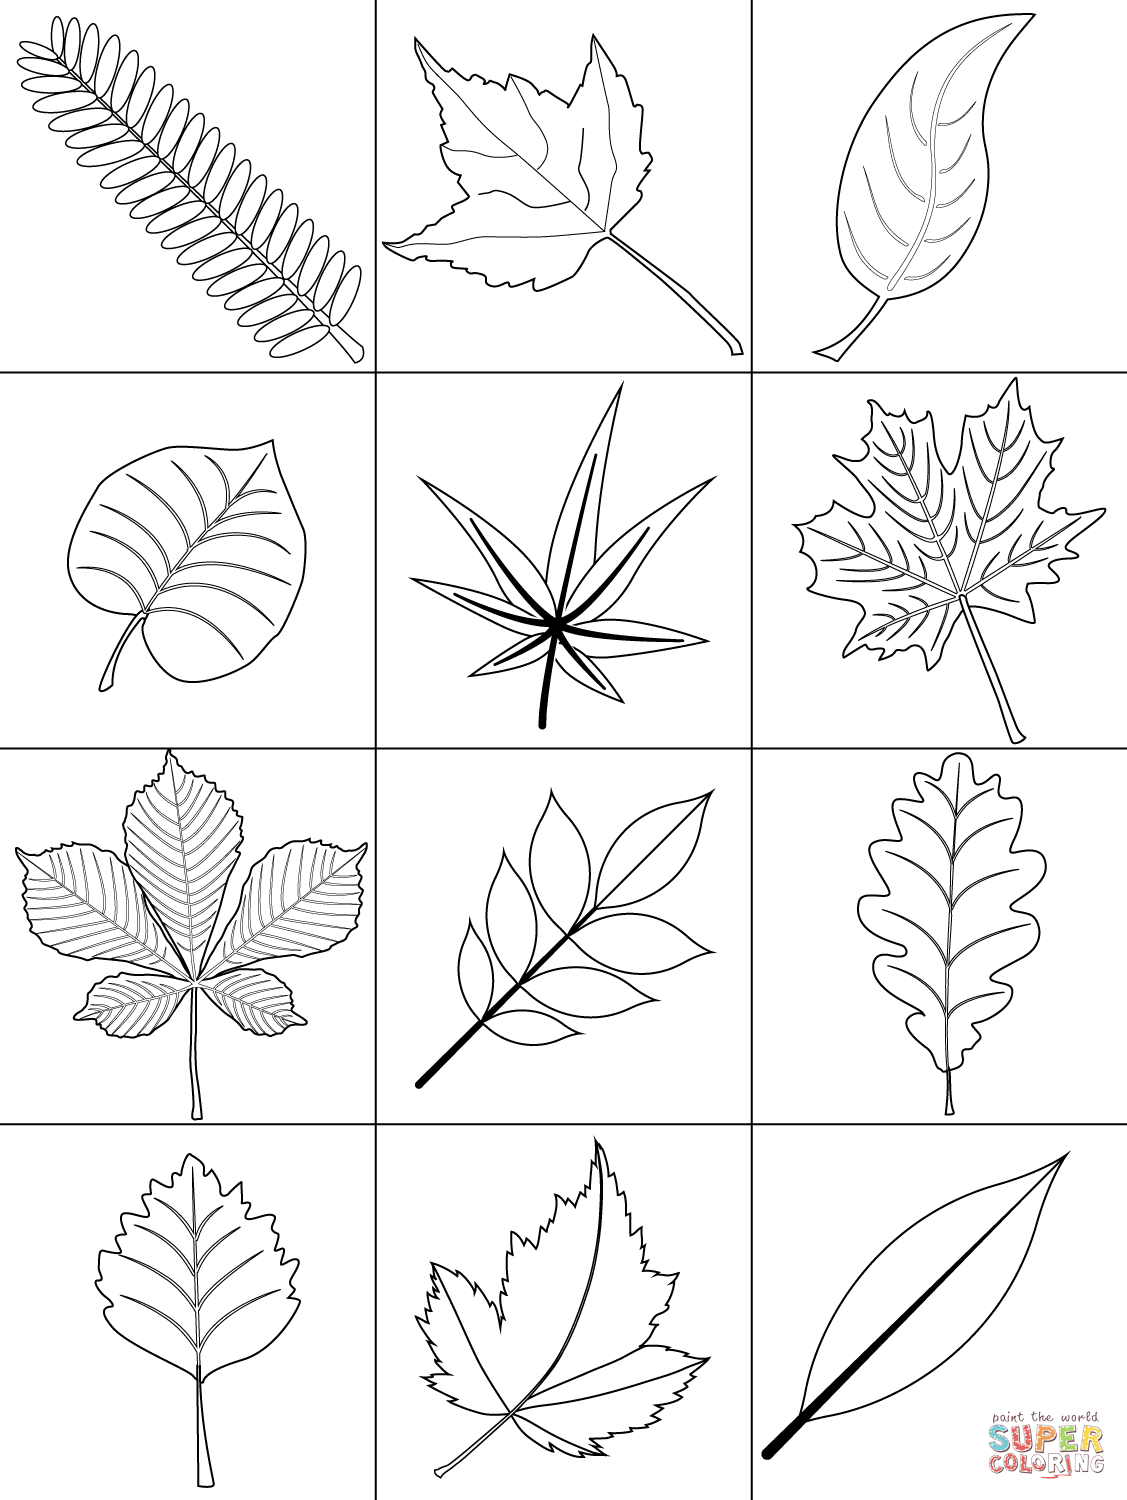 New Autumn Leaves Coloring Pages Printable | Scienza per ...